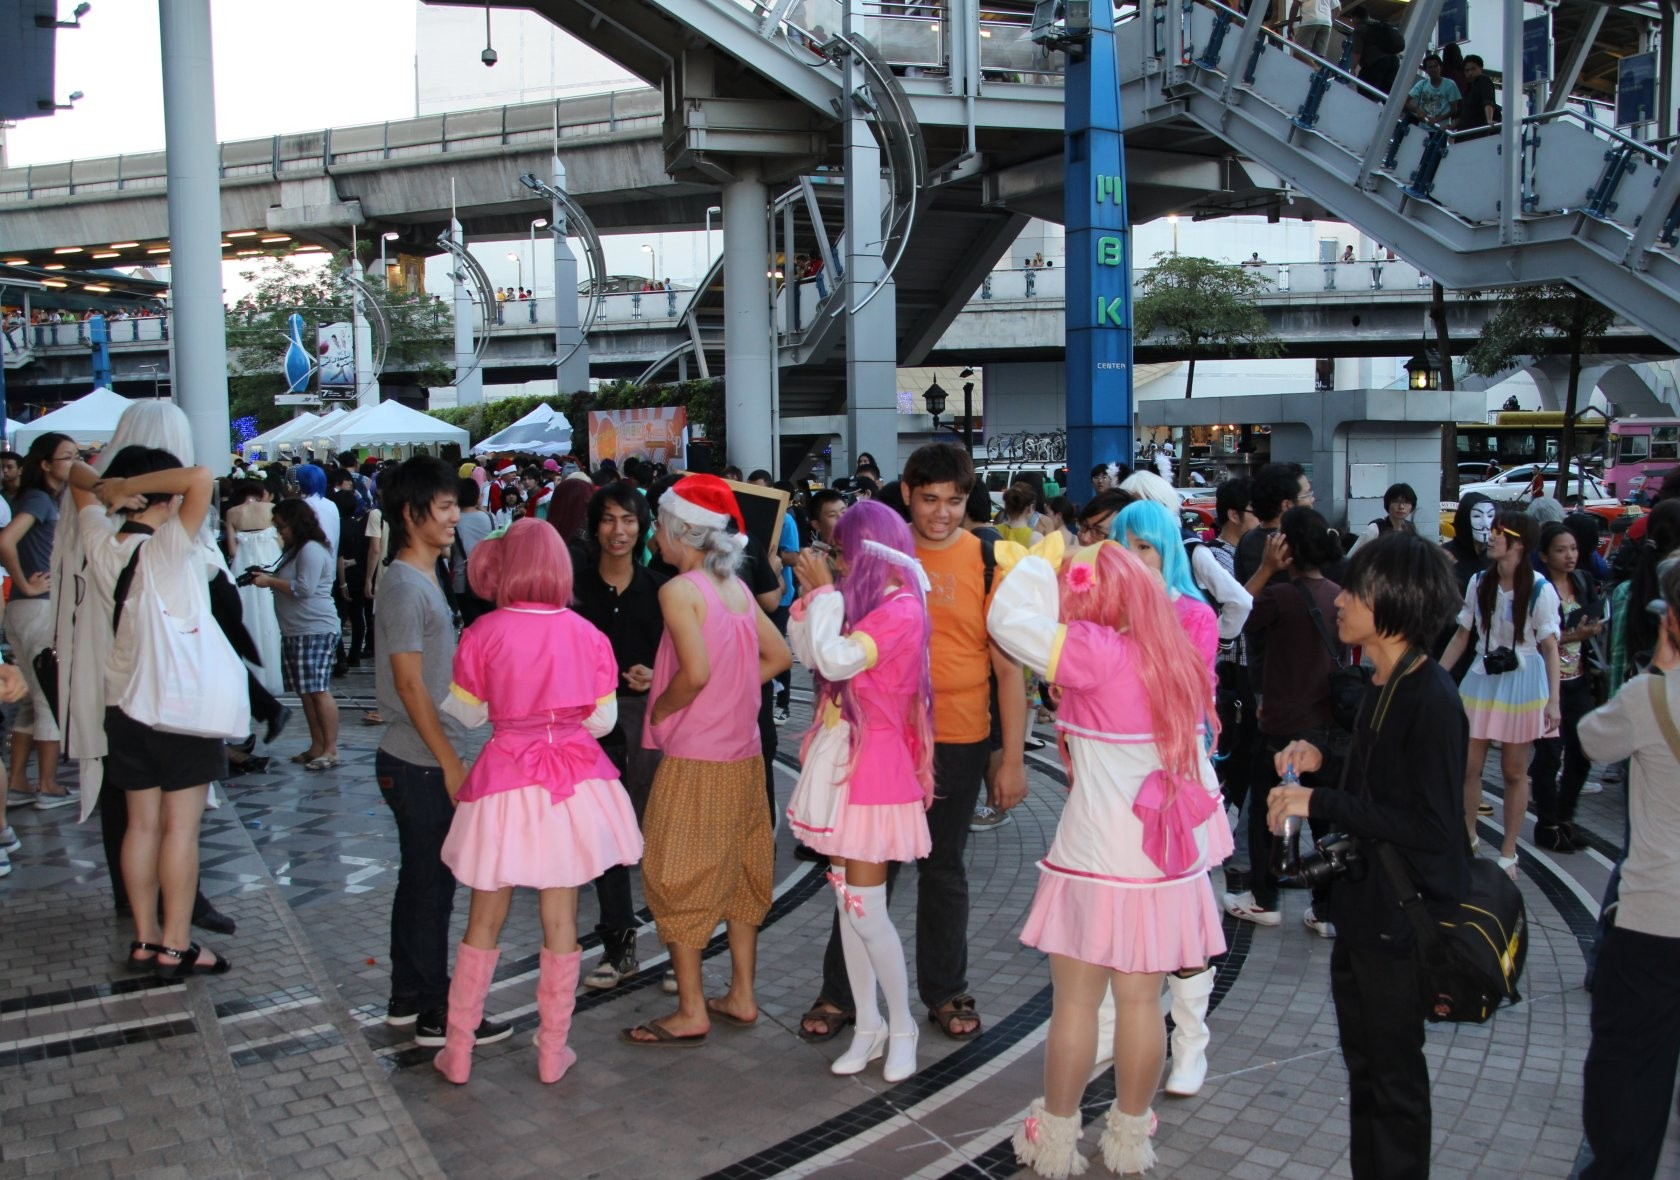 Bangkok - Cosplay / Festival J-Trends in Town am MBK XXXII